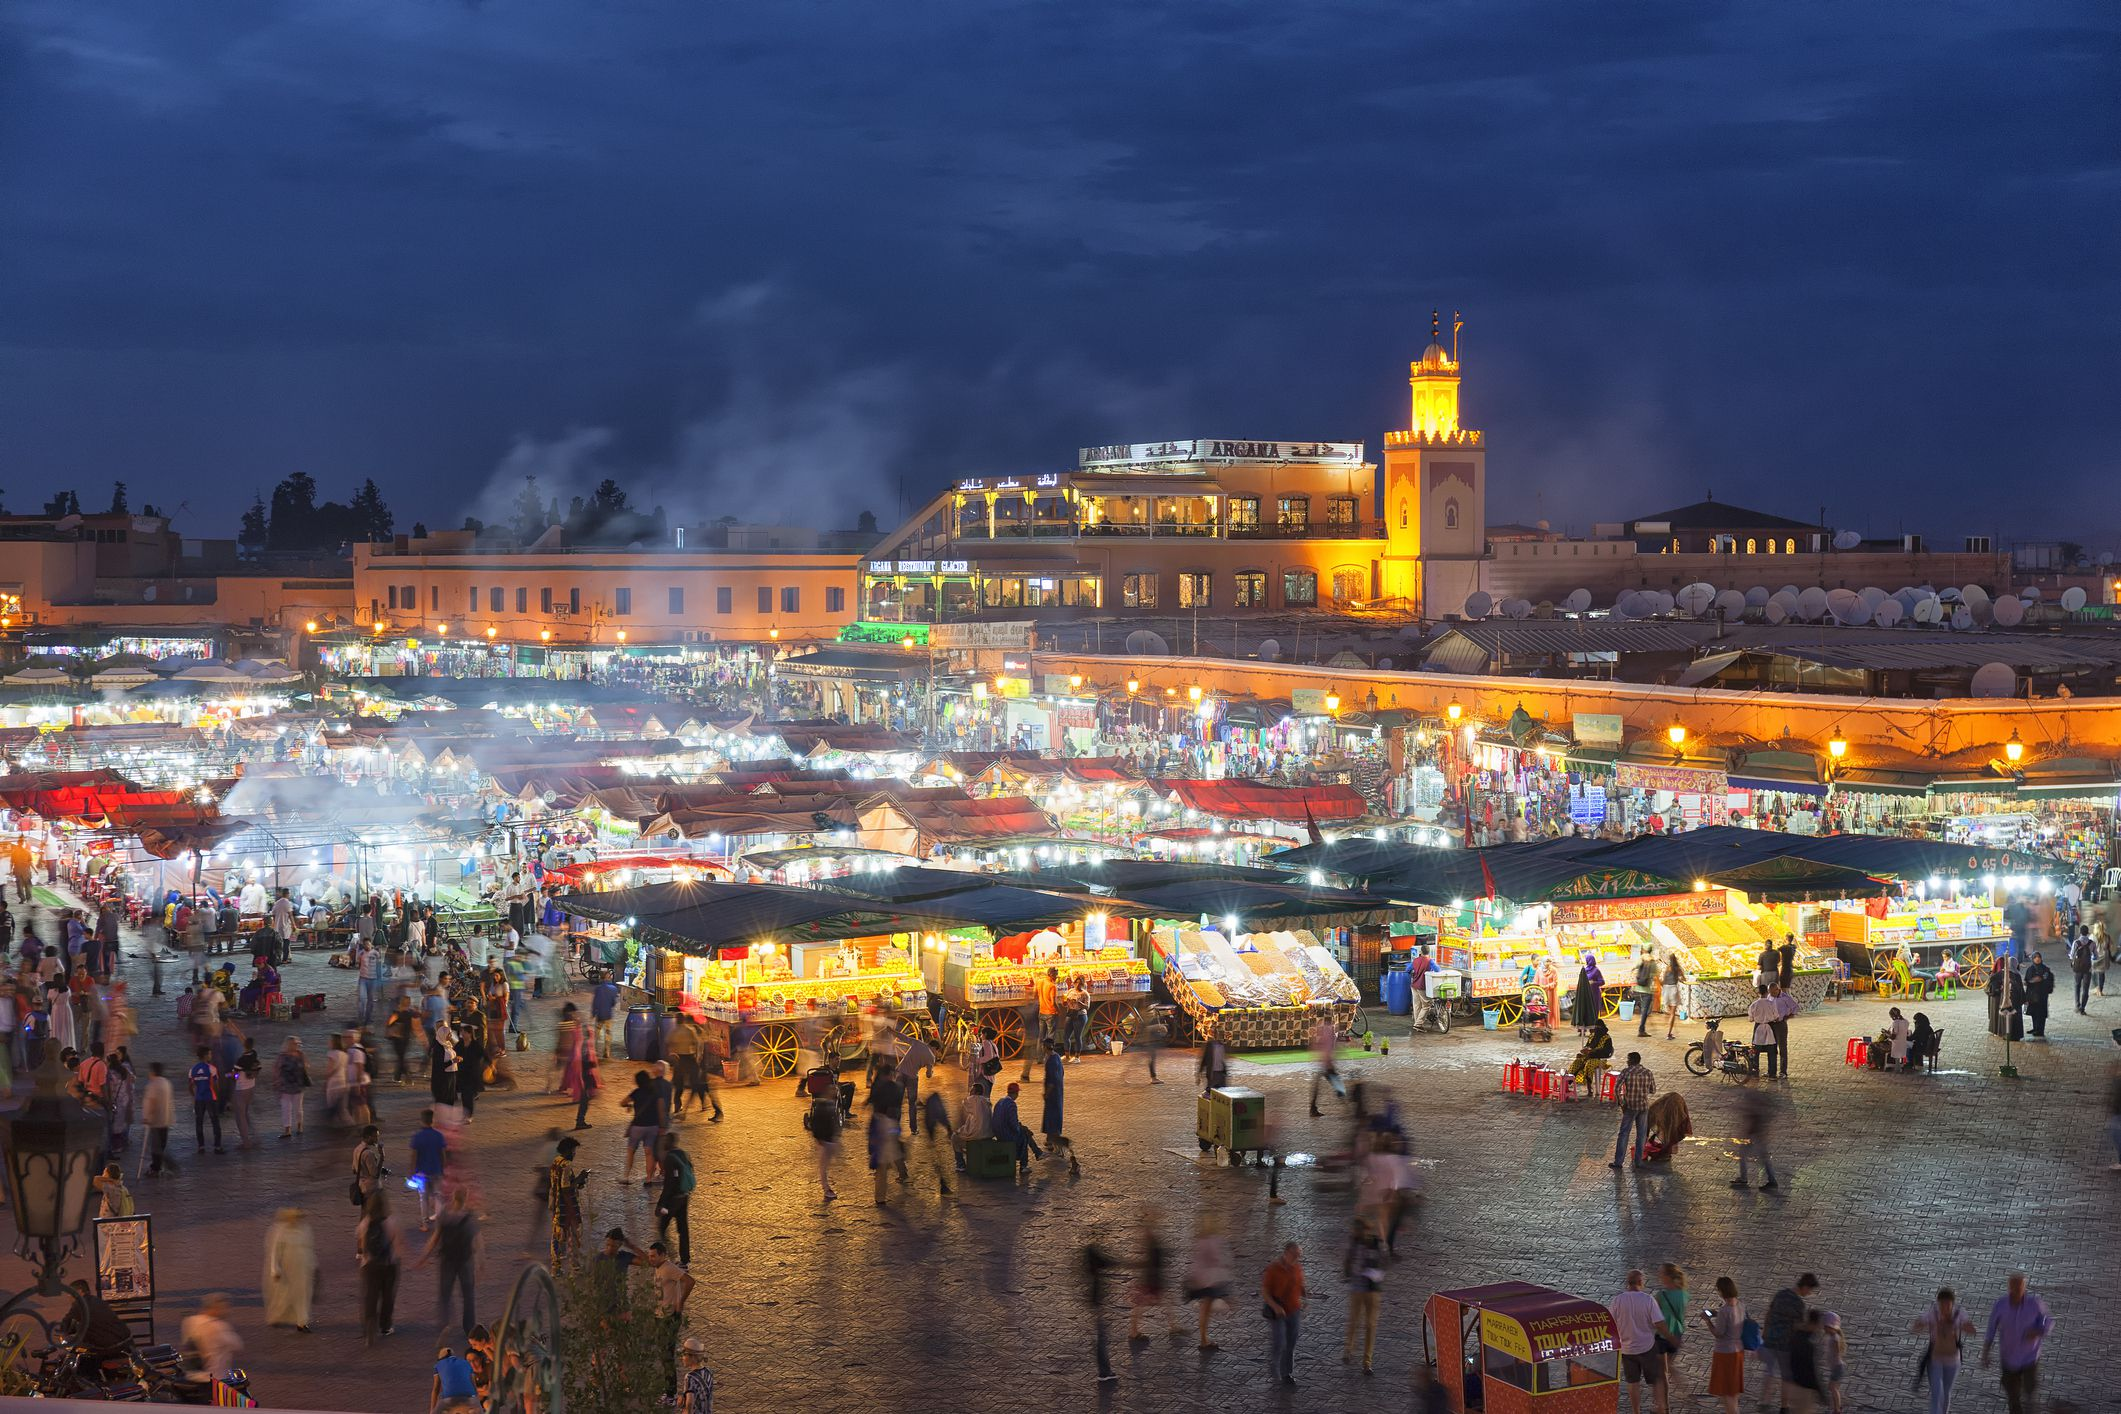 Excursions to Morocco From Spain